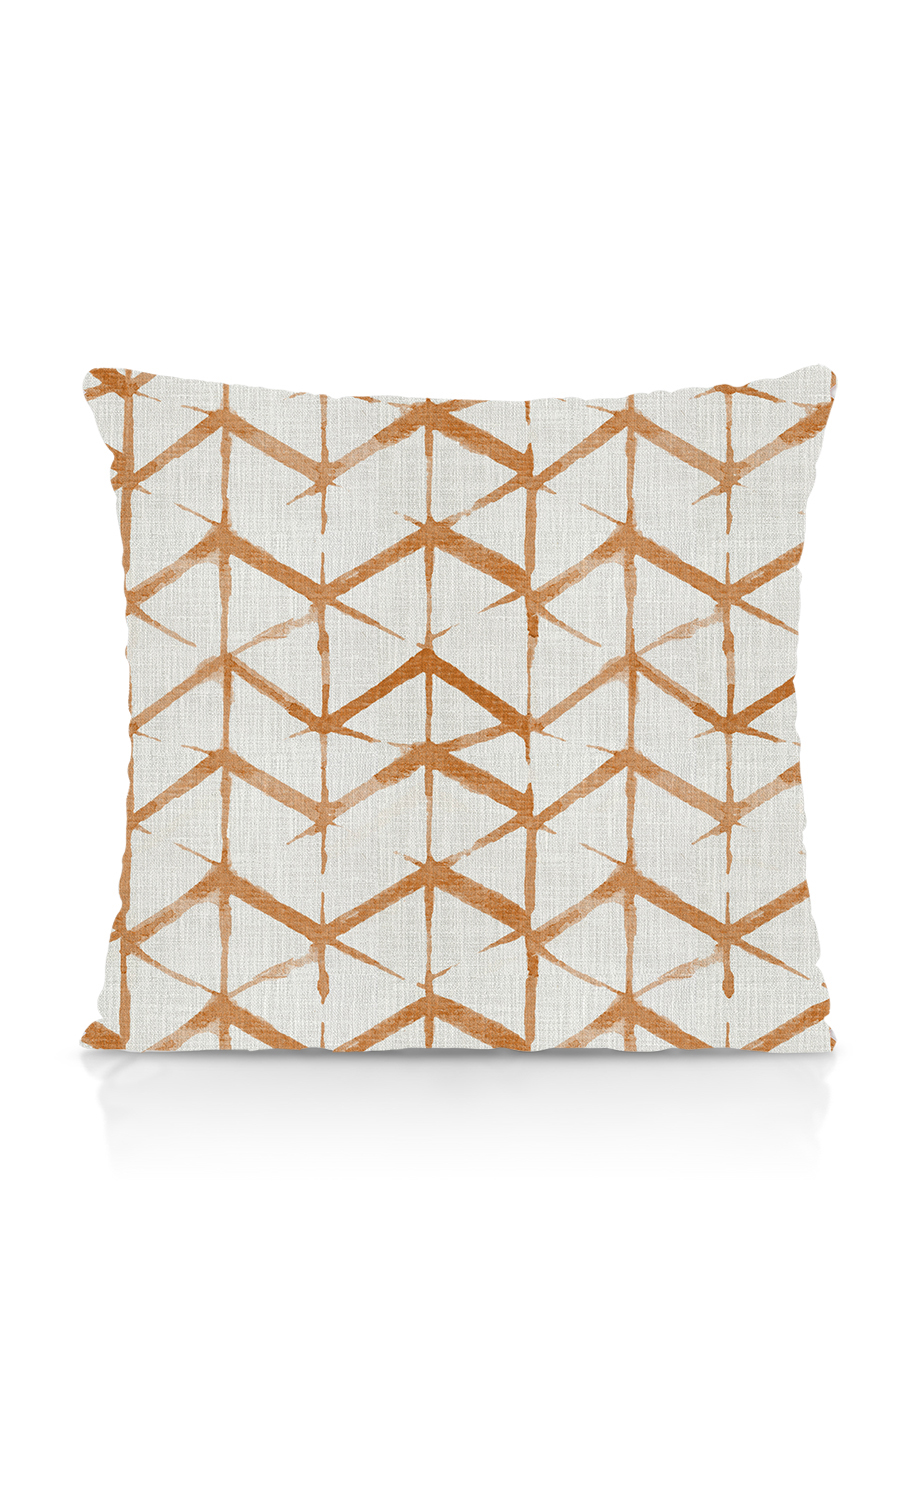 Printed Zig Zag Affordable Cushion Cover